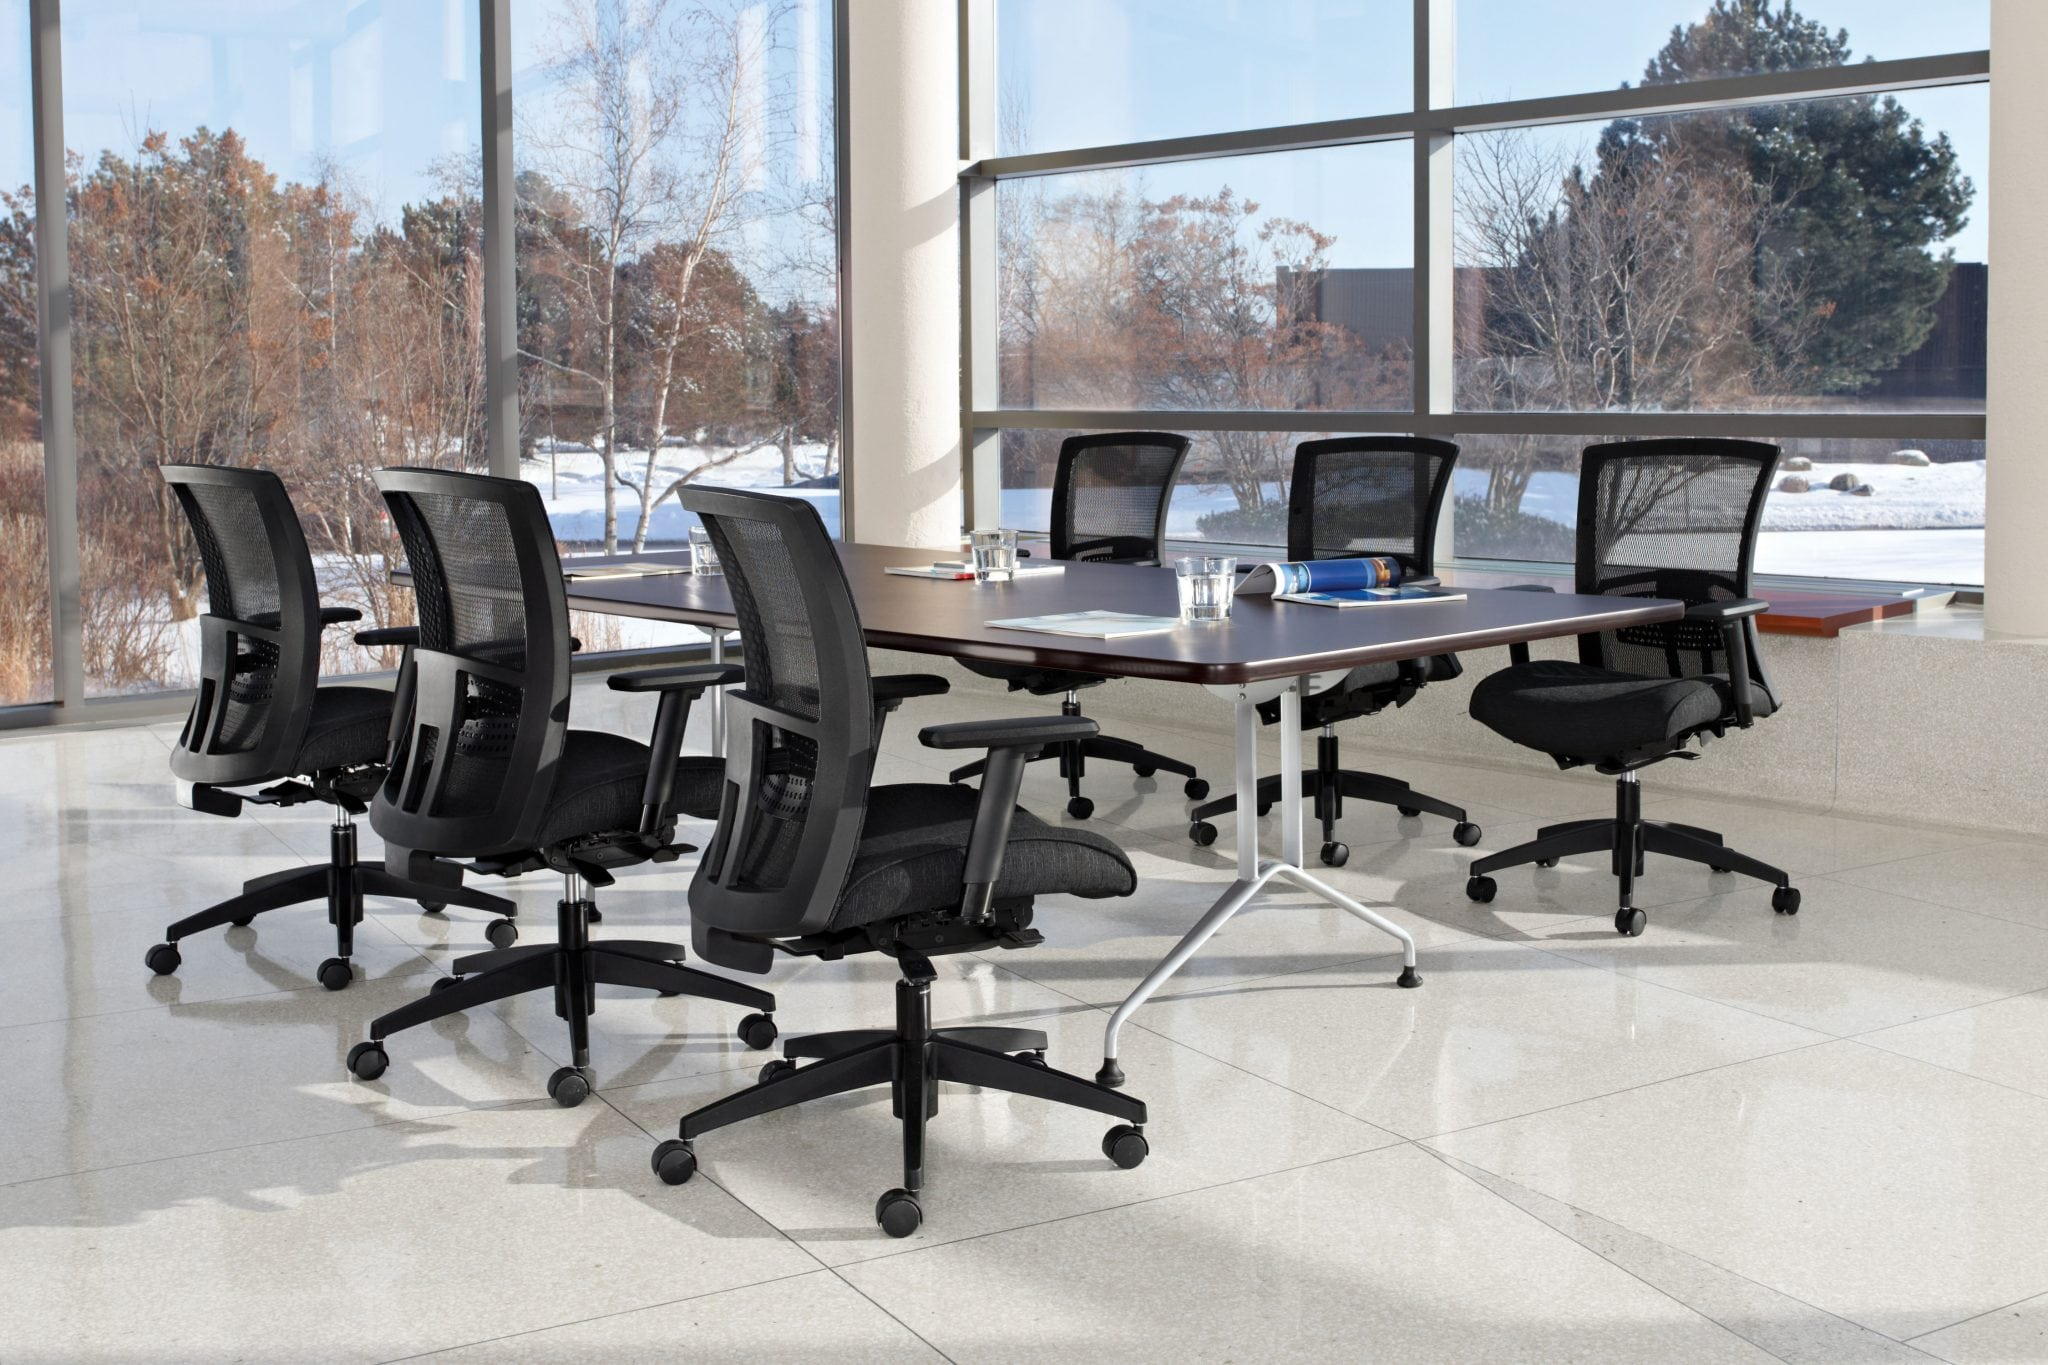 Alba Tables - An excellent choice for any of today's casual business situations